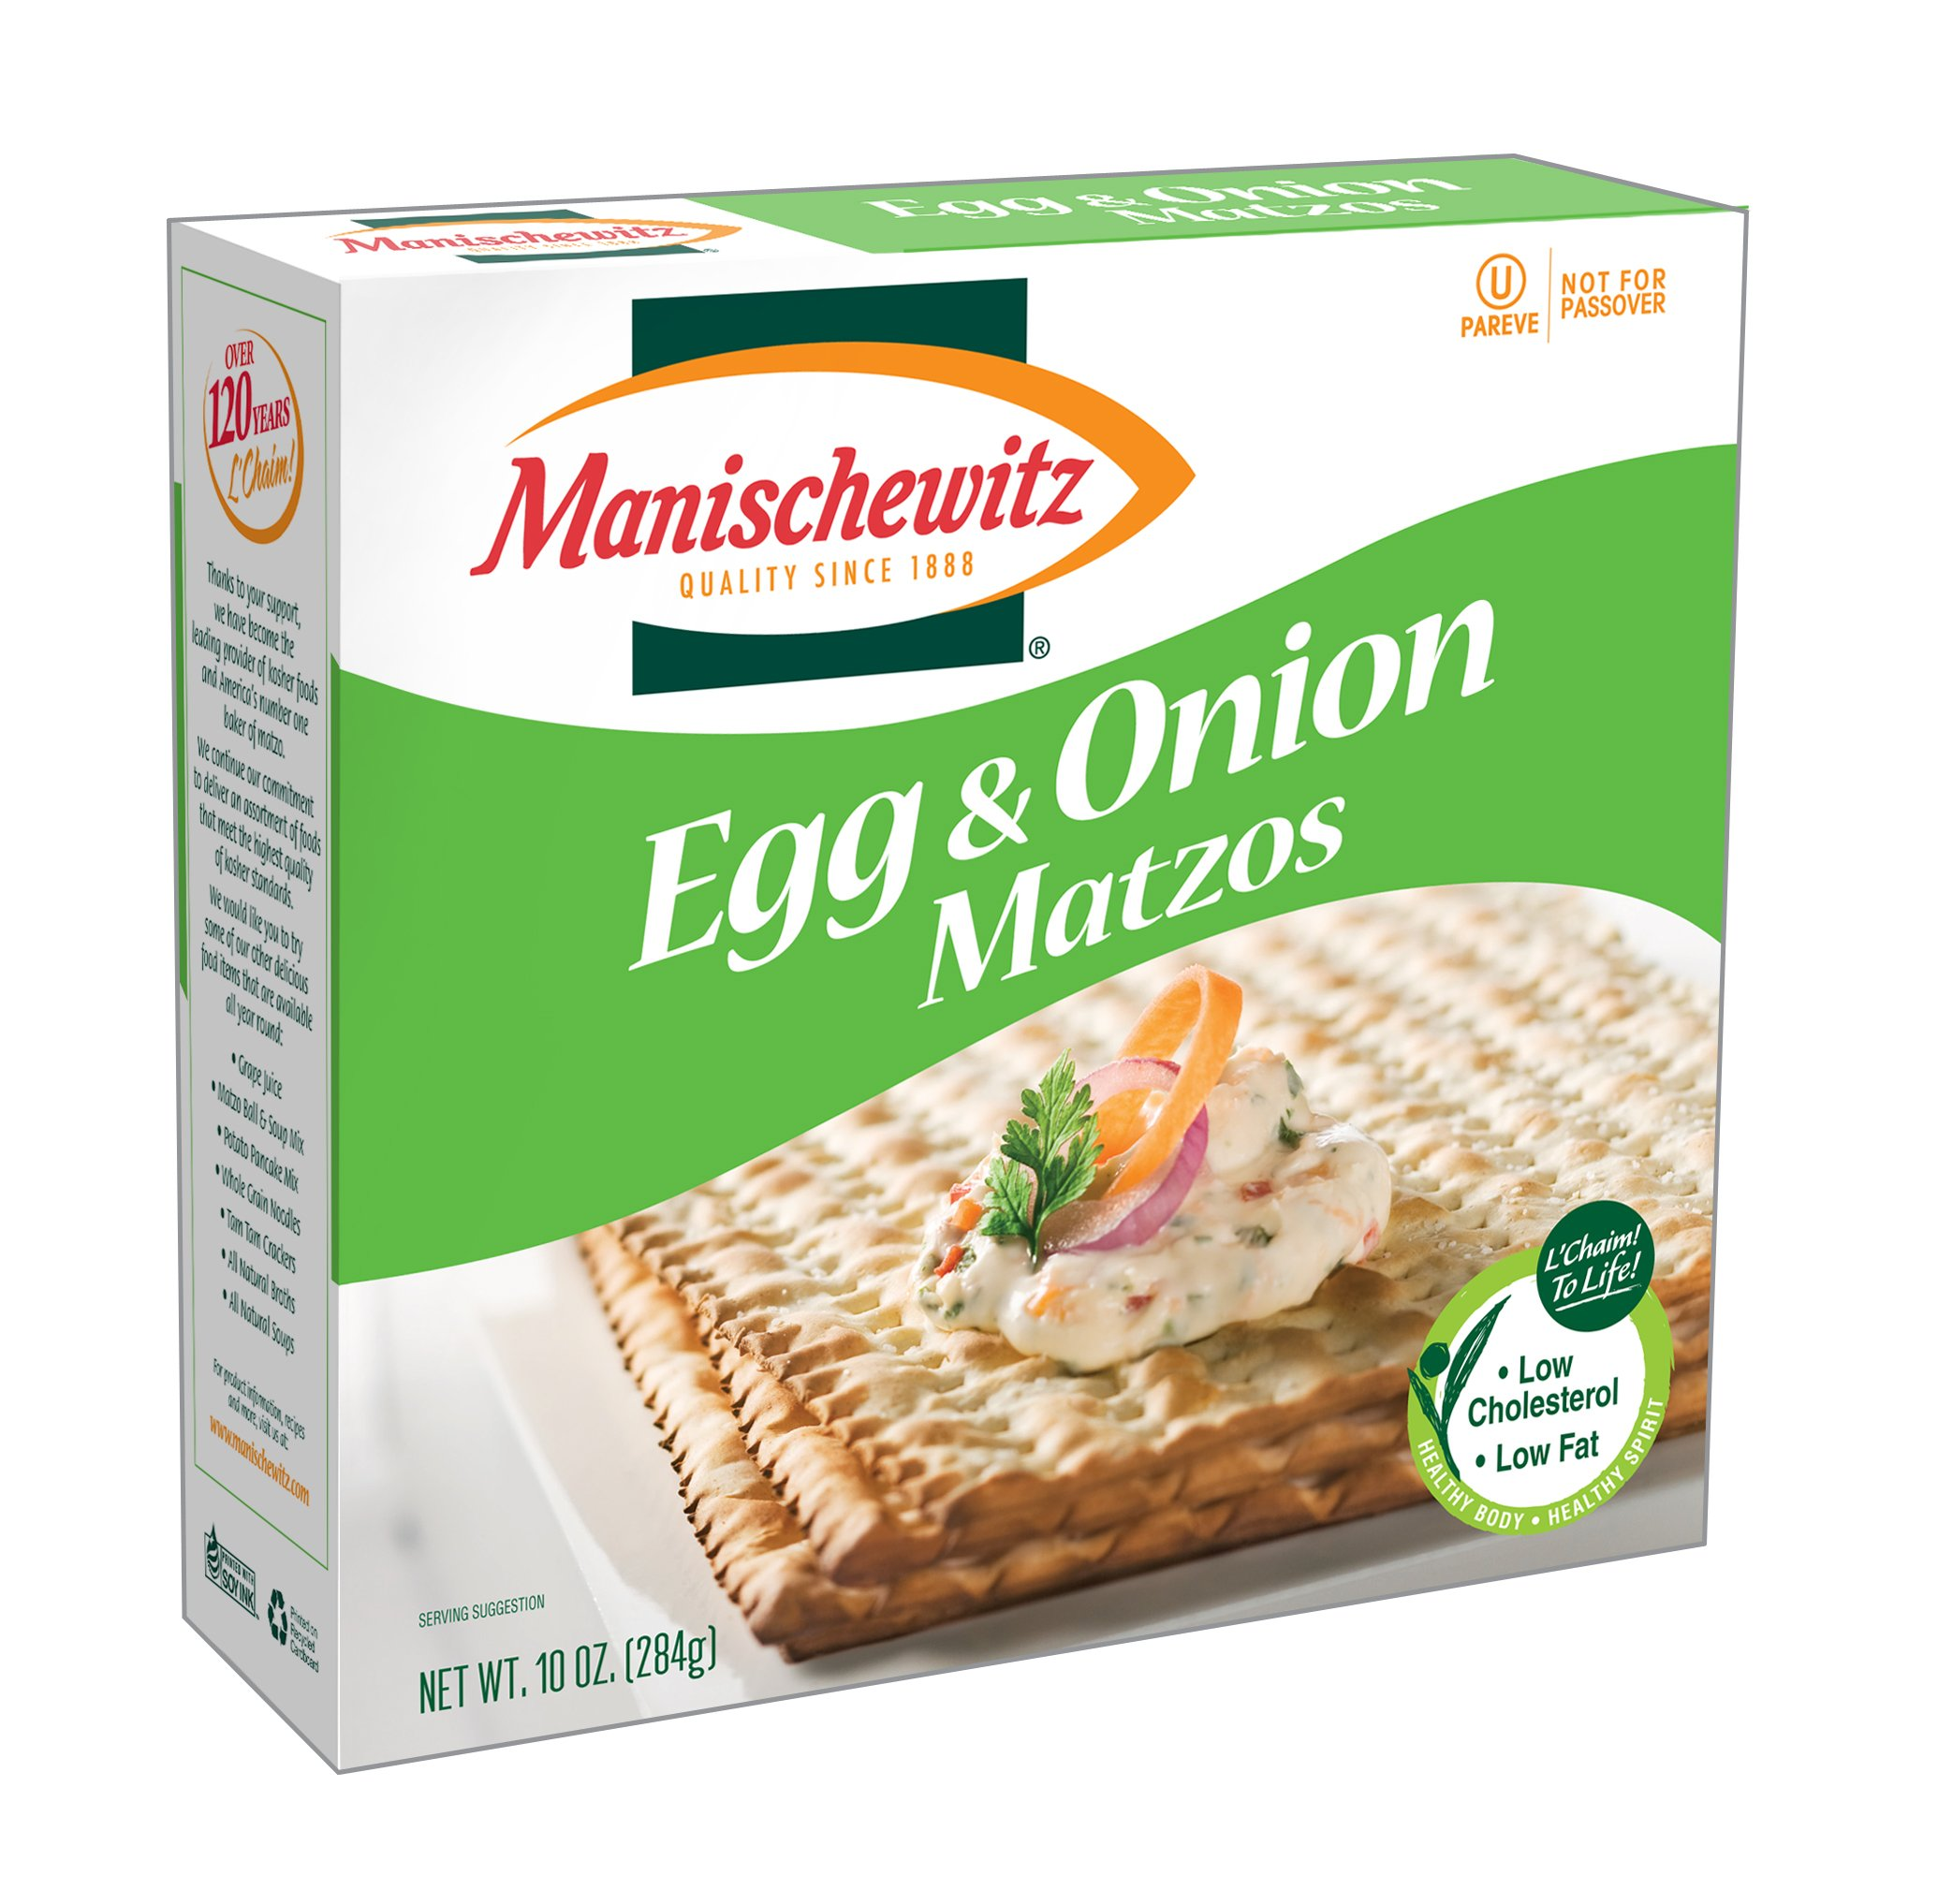 MANISCHEWITZ Egg & Onion Matzo, 10-Ounce Boxes (Pack of 8) by Manischewitz